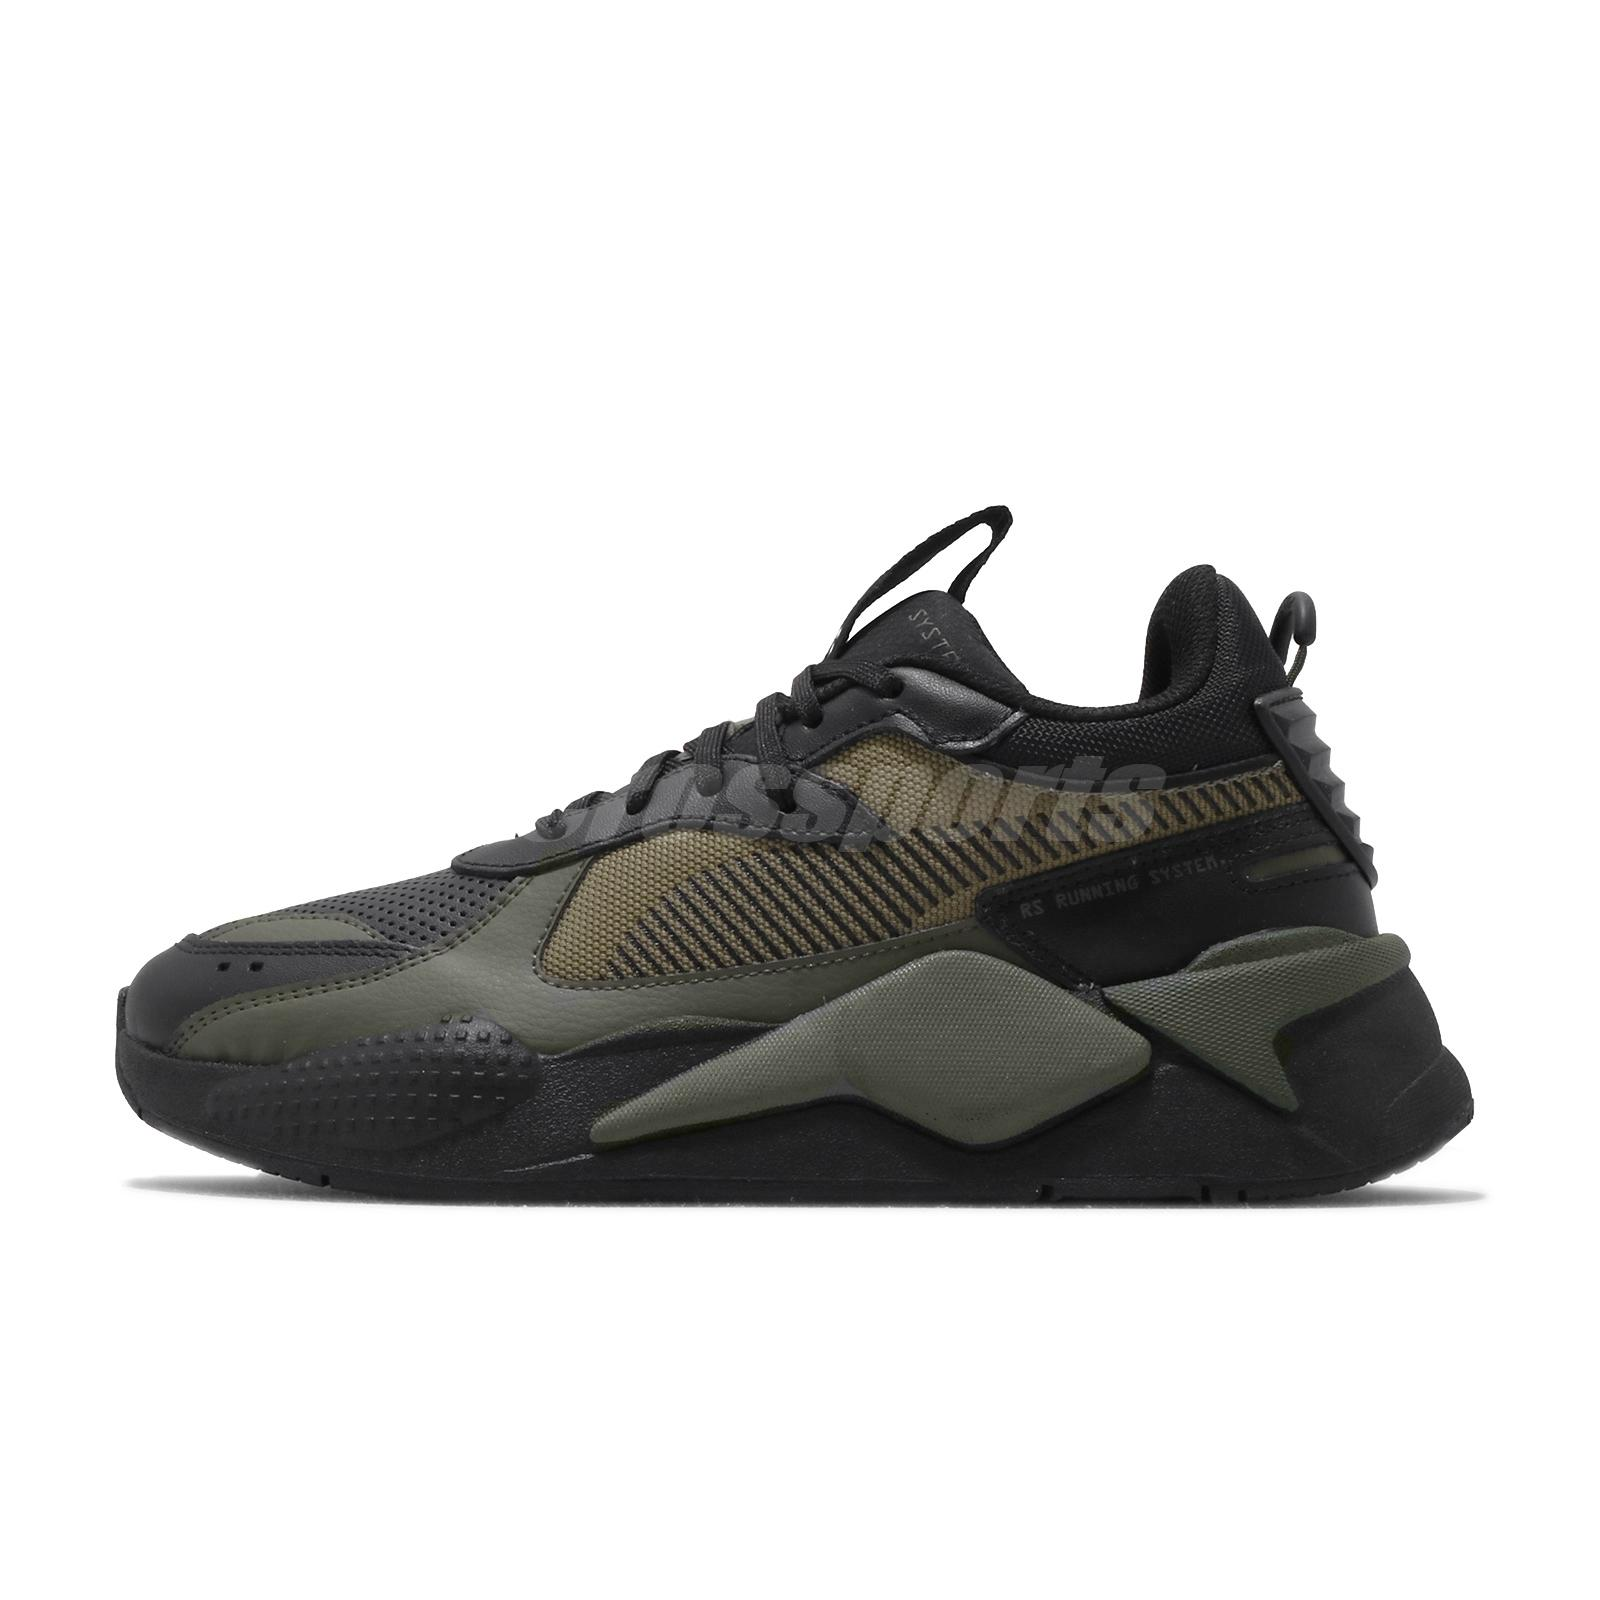 Details about Puma RS-X Winterized Running System Black Burnt Olive Men  Casual Shoes 370522-03